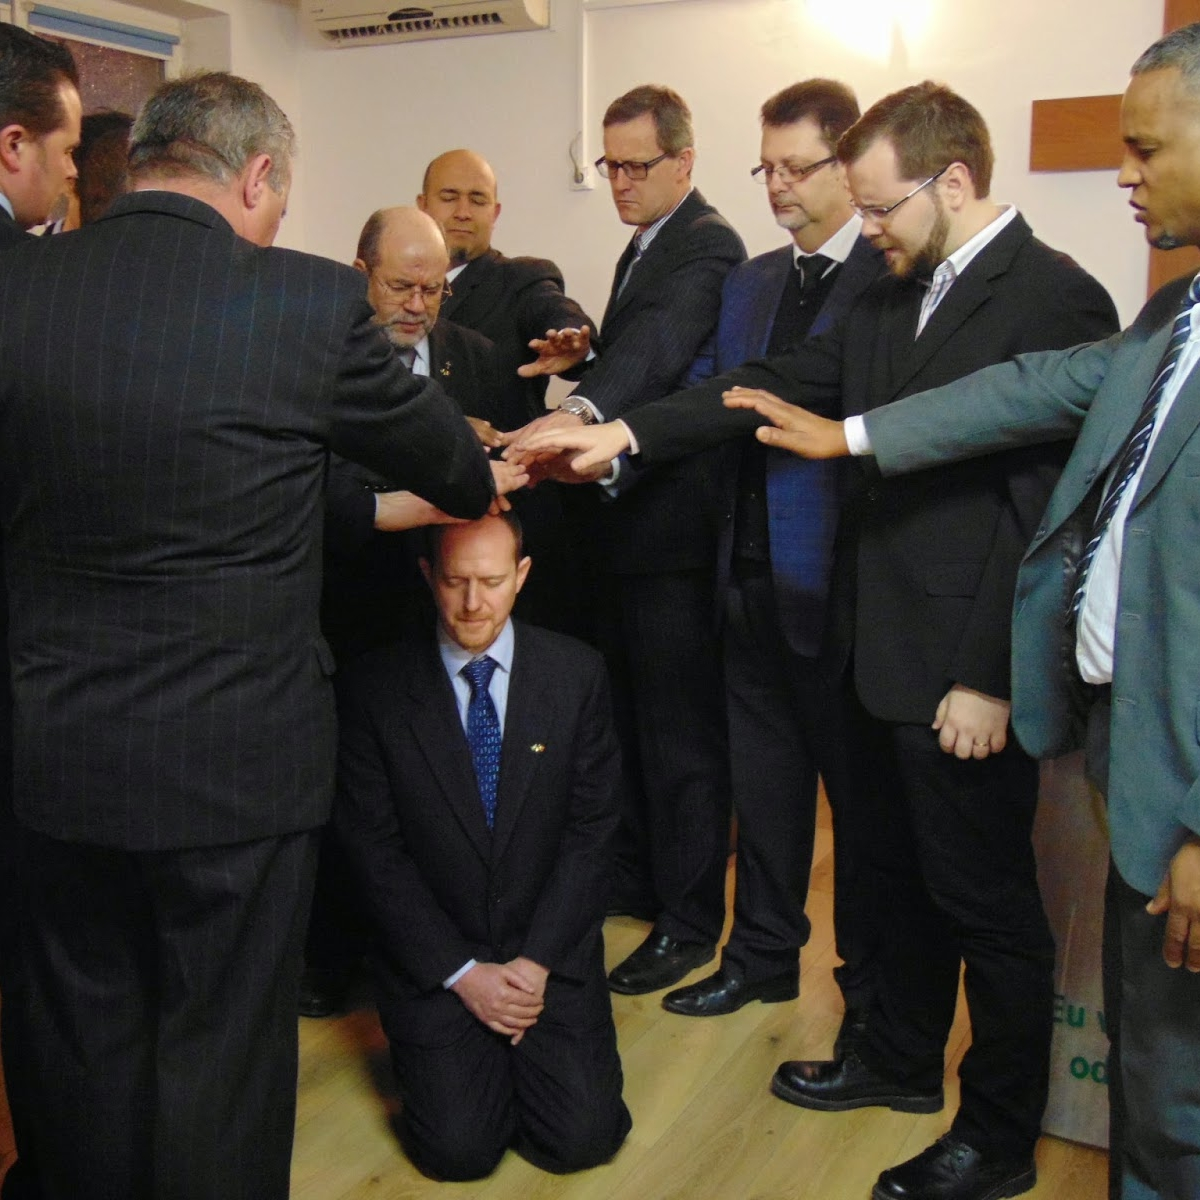 A pastor is ordained in Maganlia, Romania with pastors coming from Italy, Albania, Spain, and England.